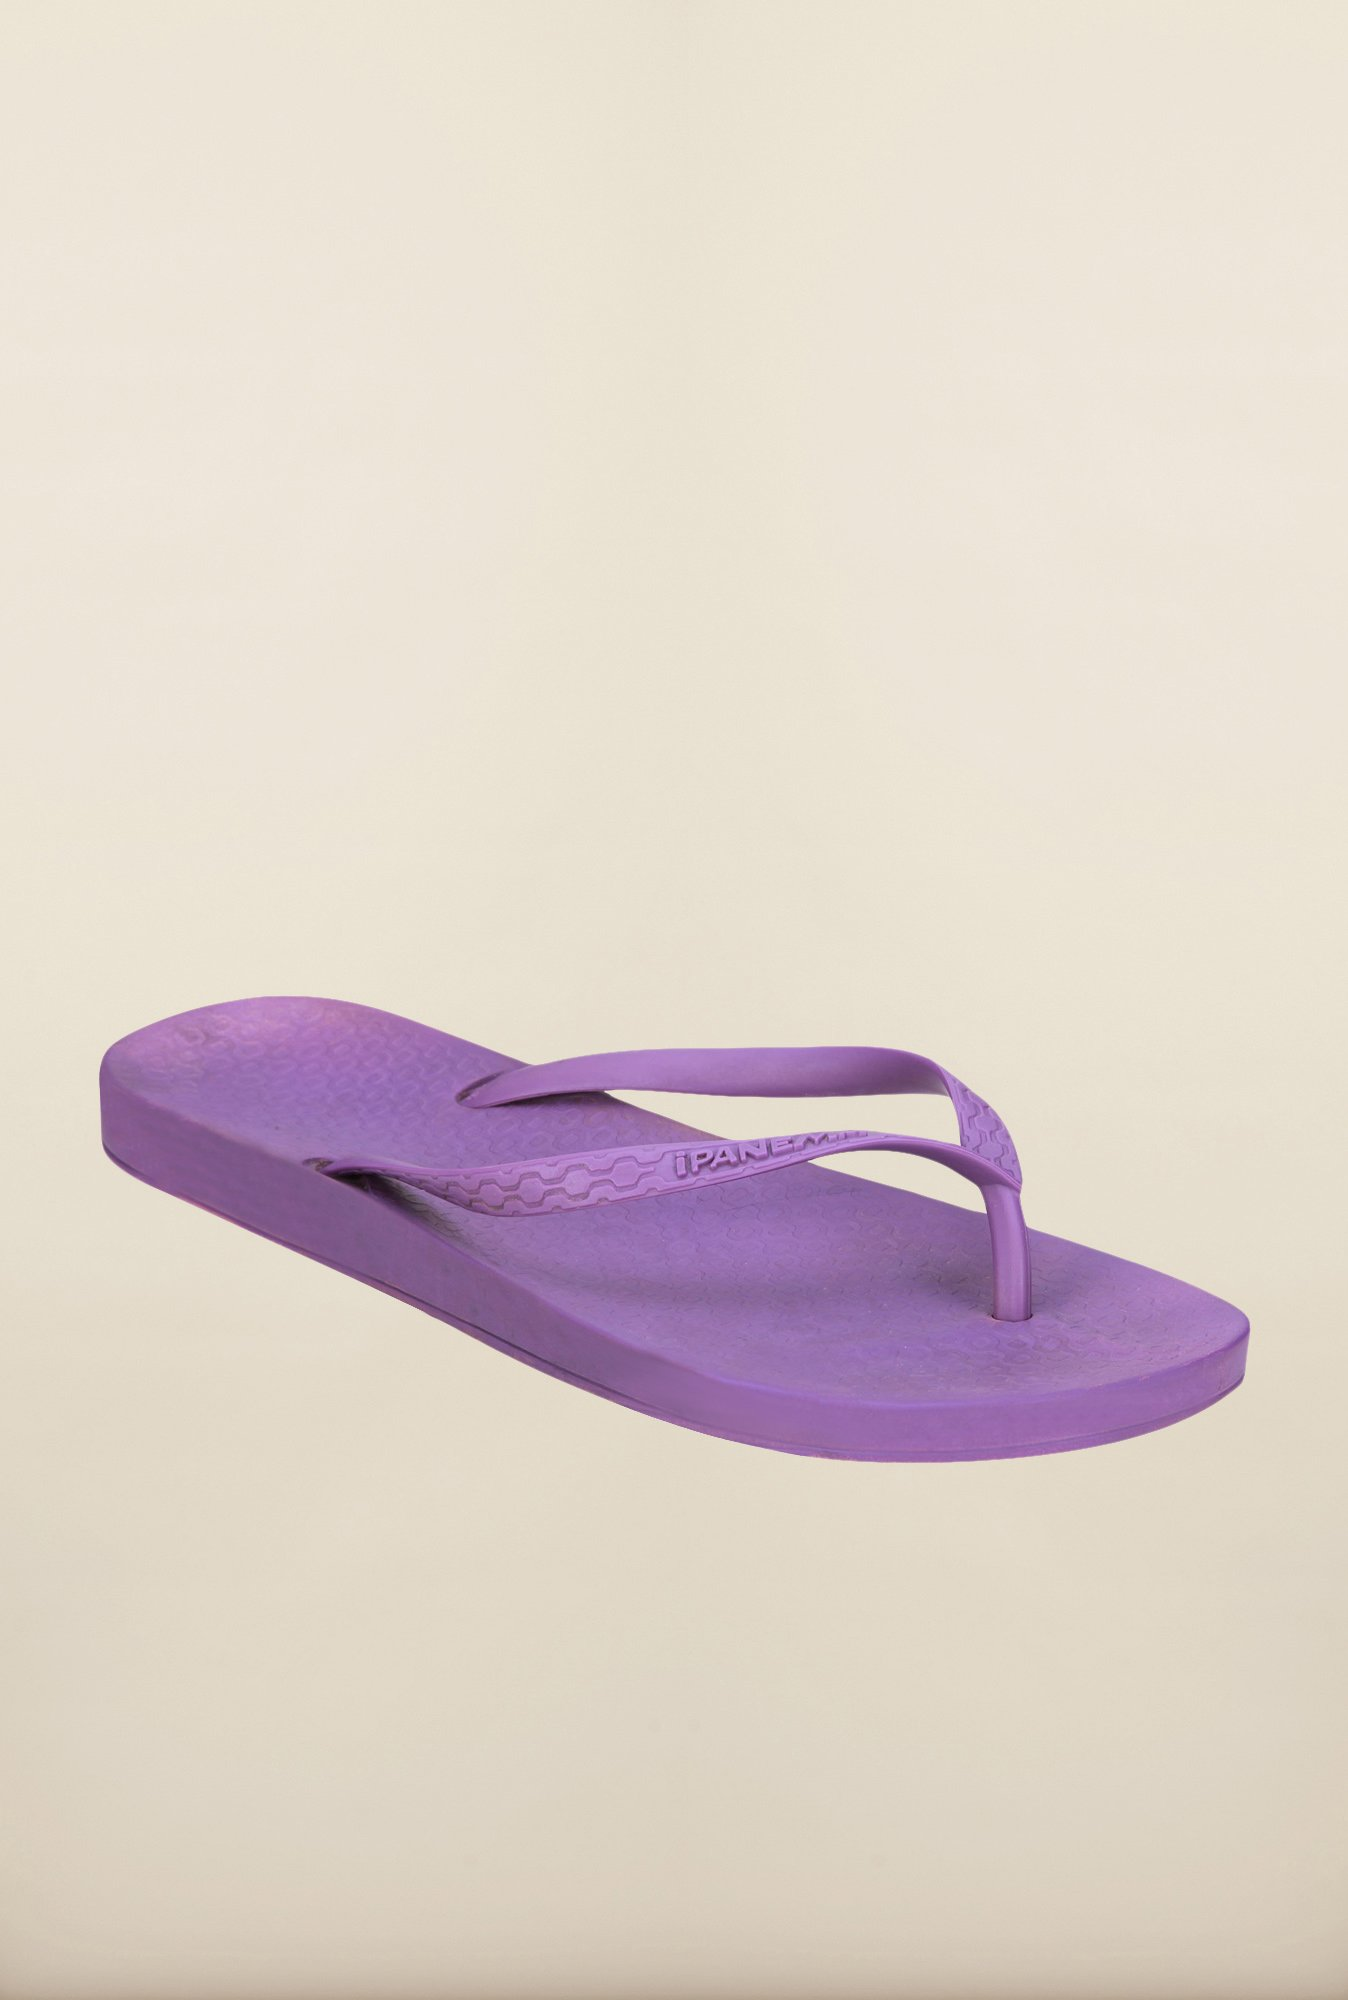 Ipanema Purple Thong Flip Flops